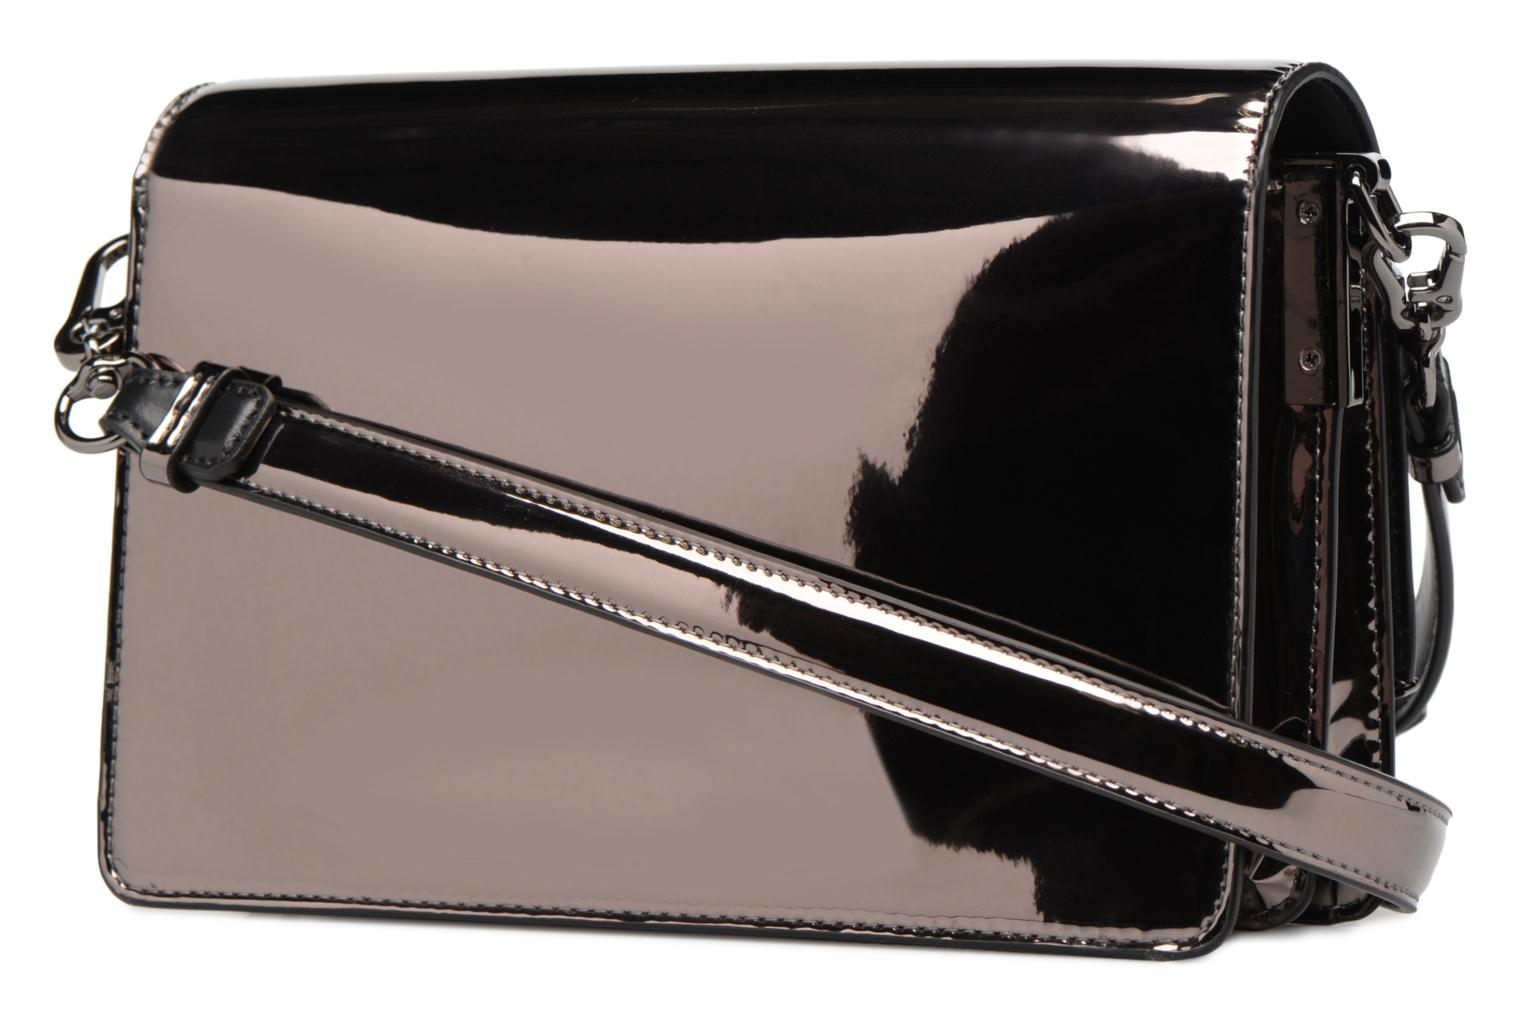 NICKEL K Metallic Shoulder Bag A975 Signature LAGERFELD Gloss KARL O5xq8vYU